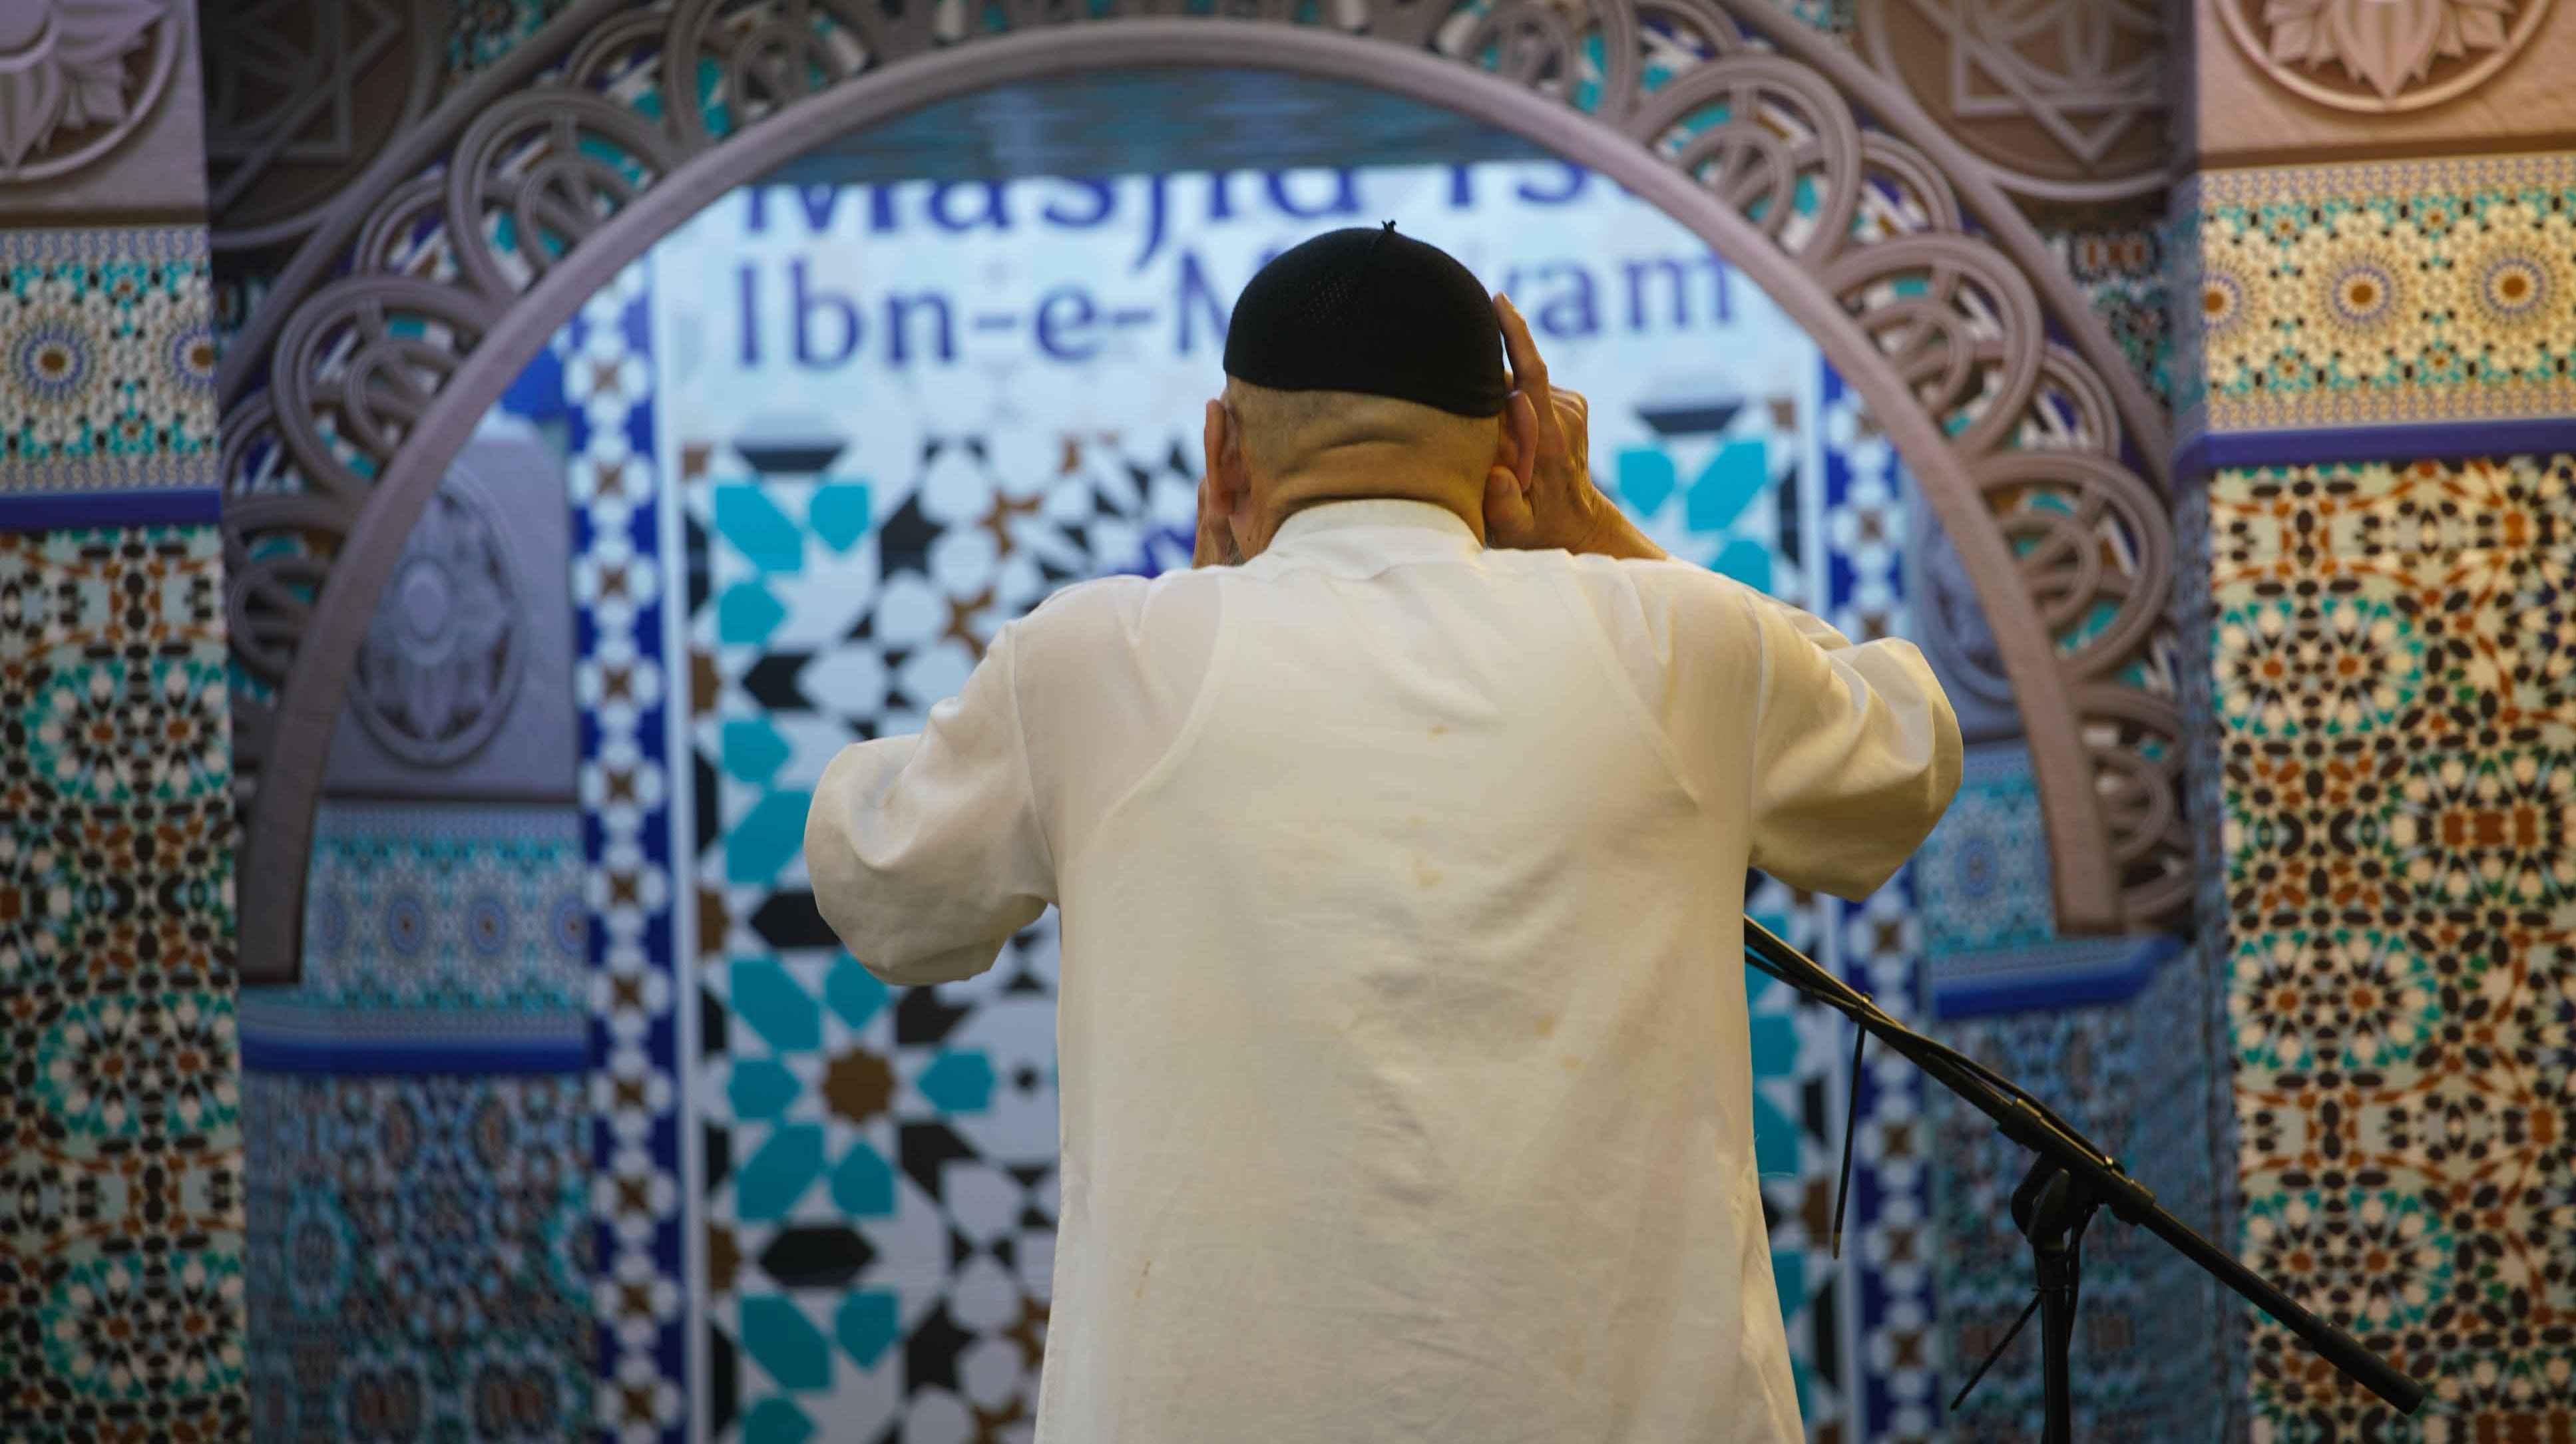 New Zealand Shooting Pinterest: Local Mosque Commemorates New Zealand Shooting Victims